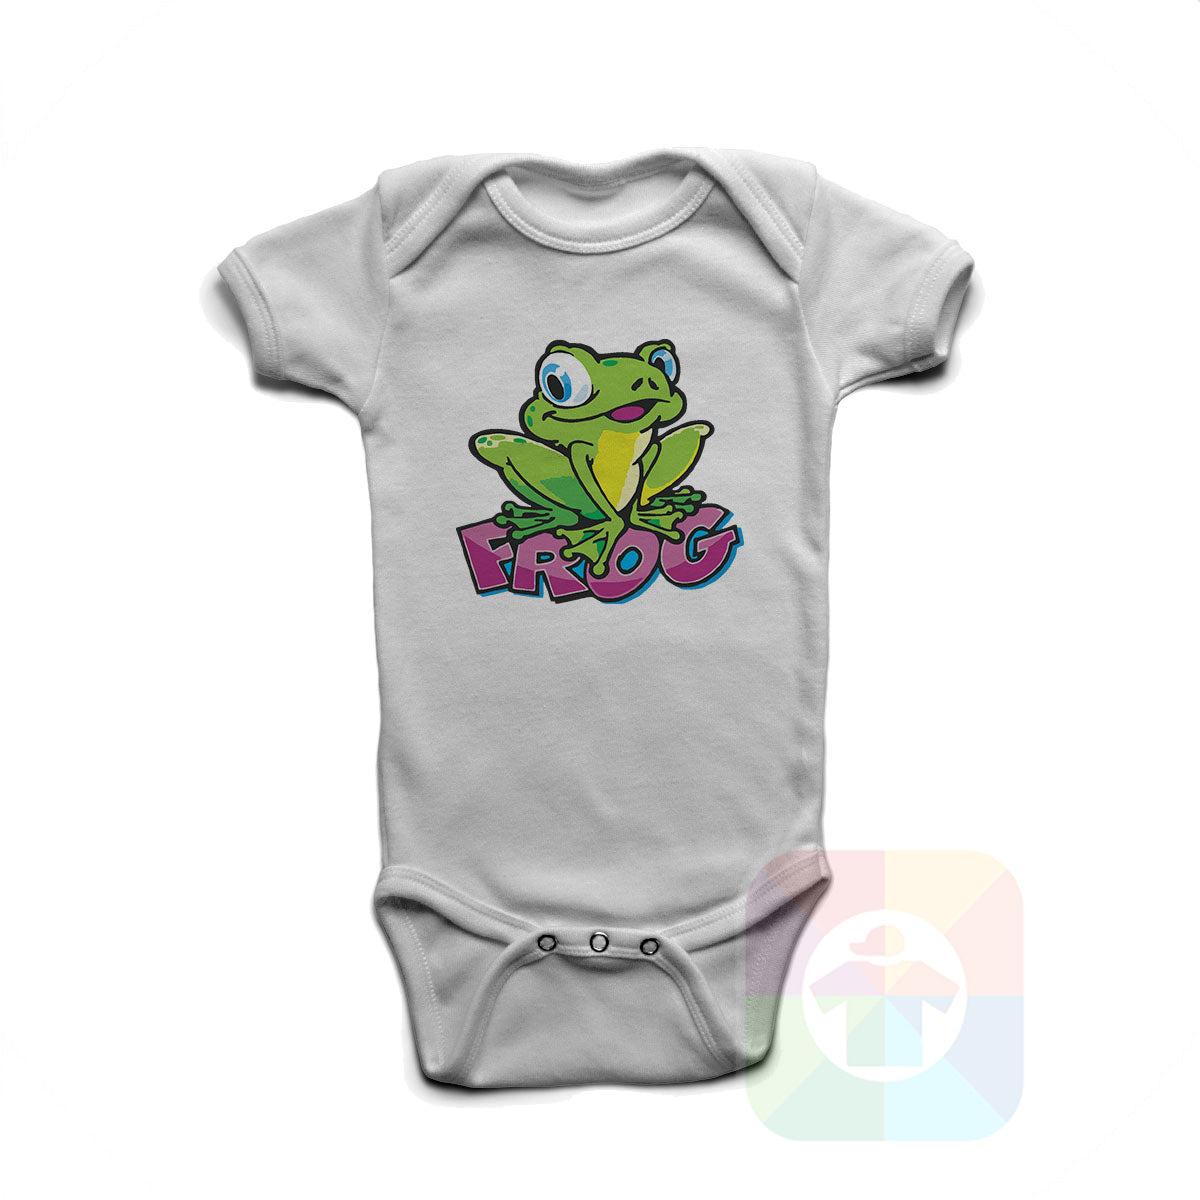 A WHITE Baby Onesie with the  ' Baby onesie 'ANIMALS FROG' kids funny novelty design. #8011 / New Born, 6m, 12m, 24m Sizes ' design.